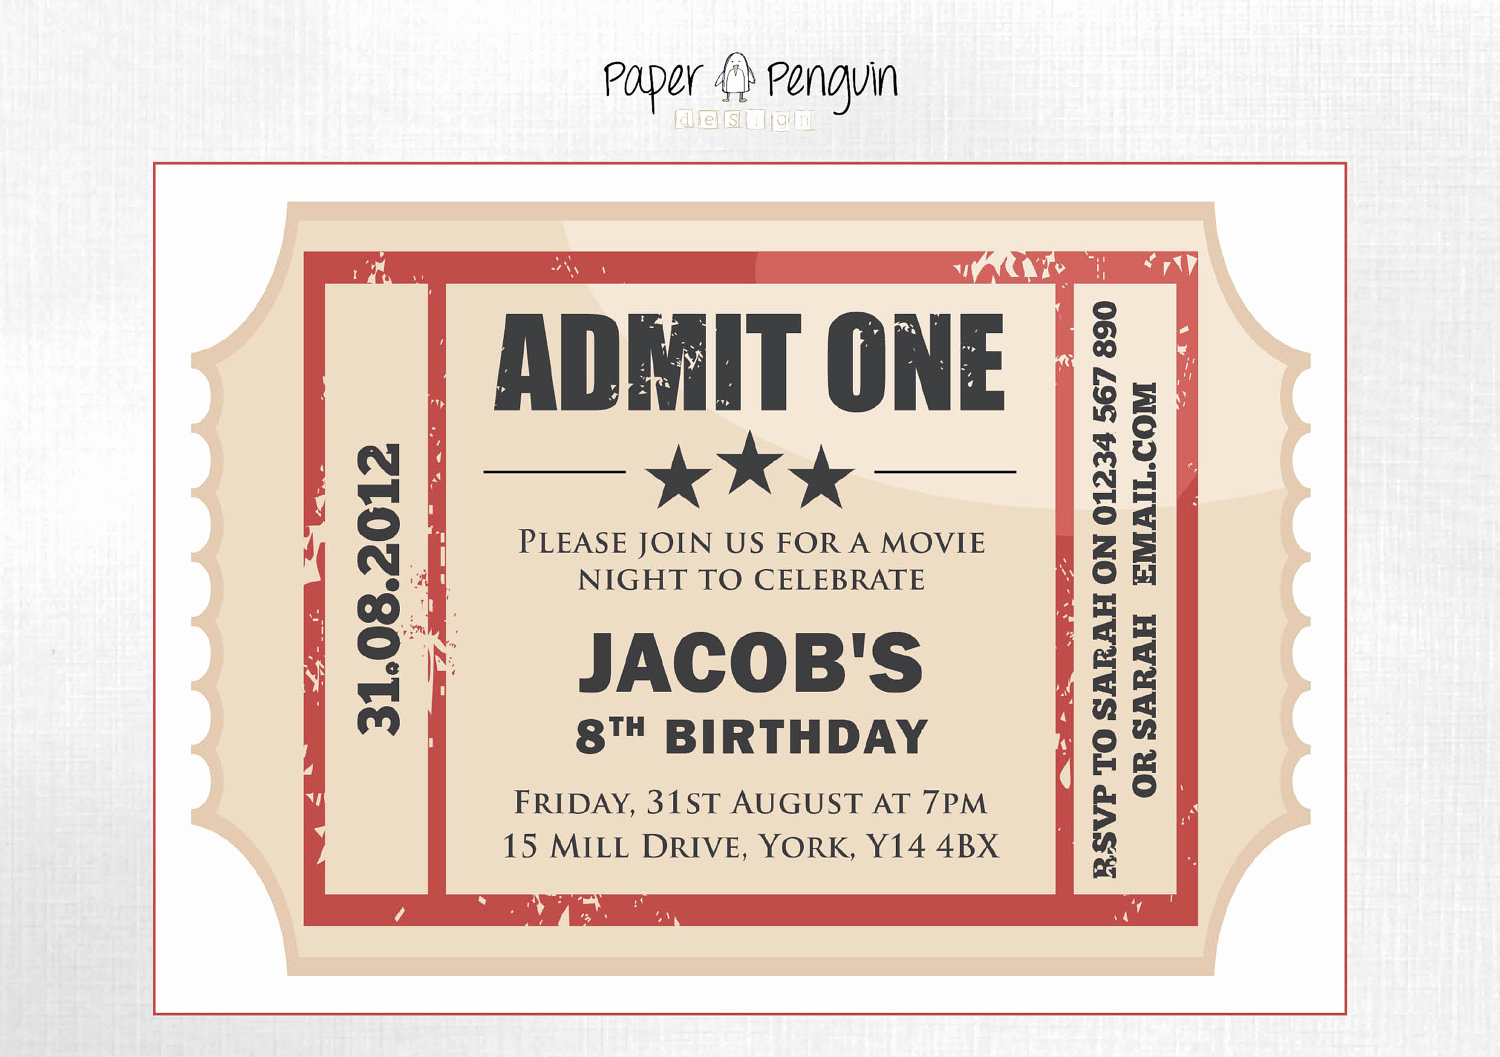 Admit One Ticket Invitation Template Lovely Movie Ticket Party Invitation Templates